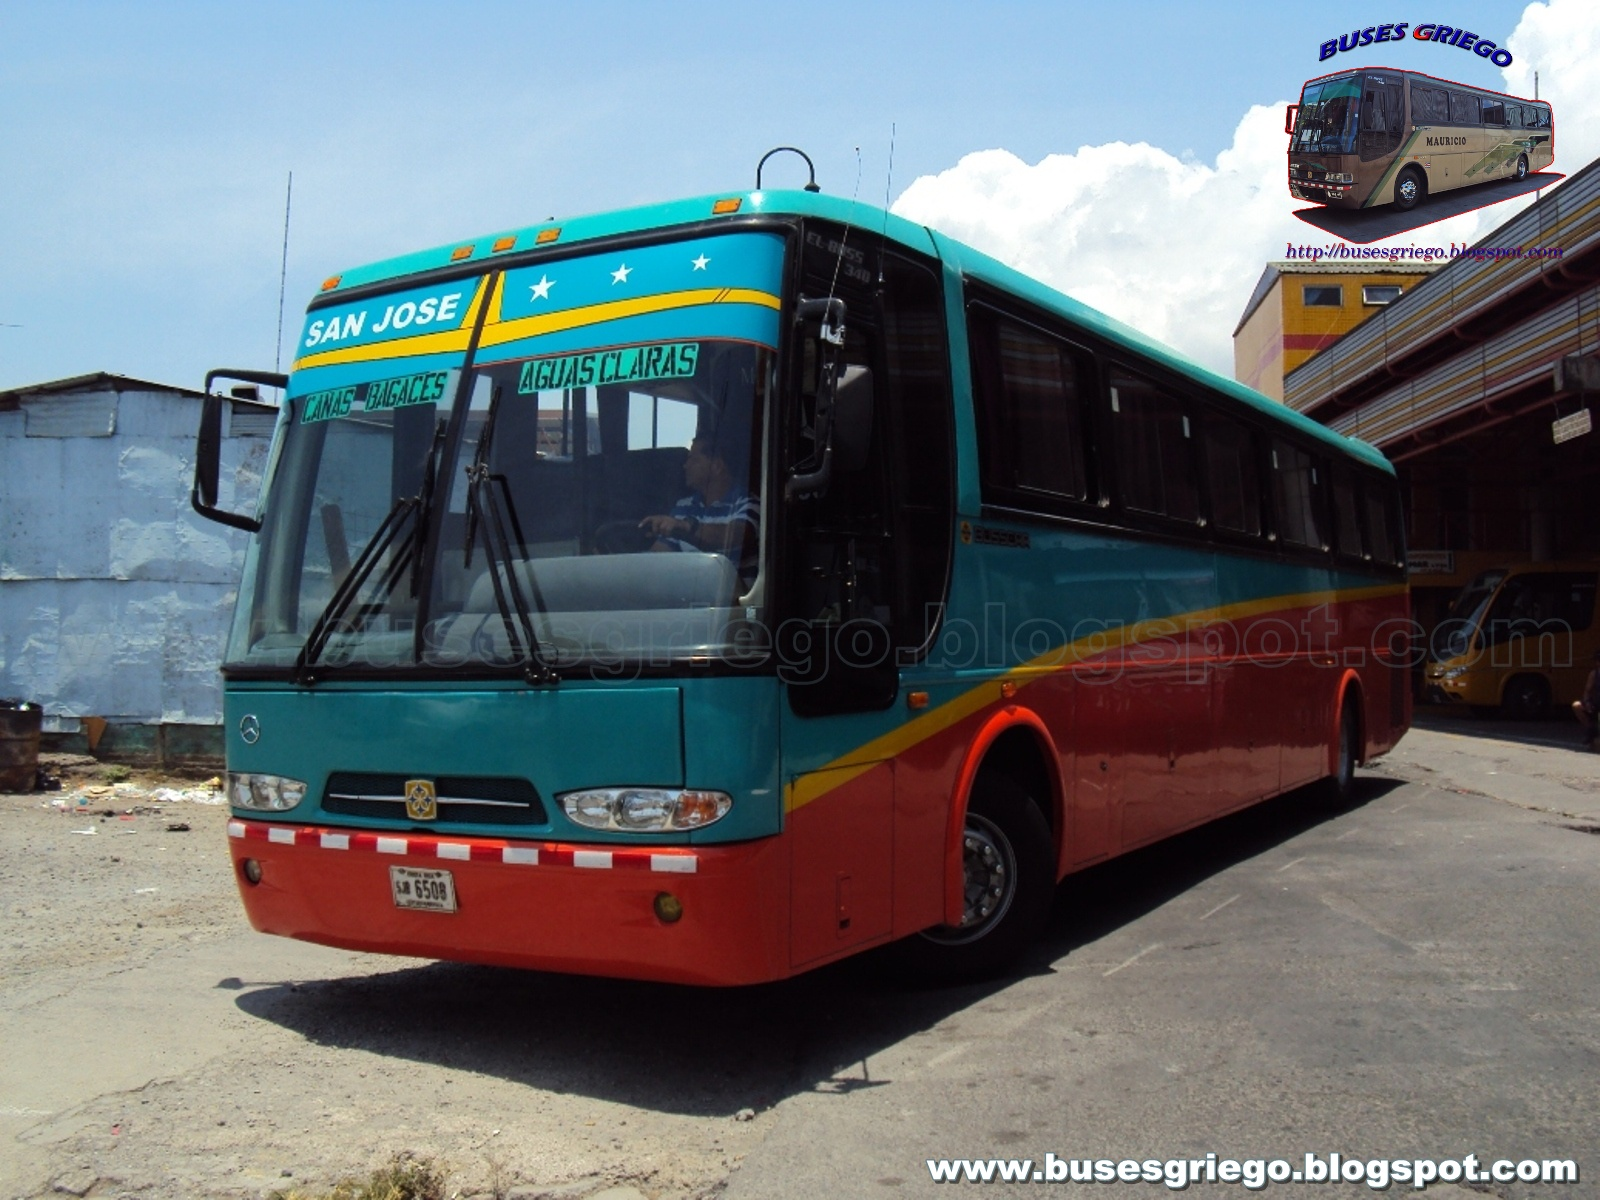 Buses griego galeria 41 01 05 11 for San jose mercedes benz